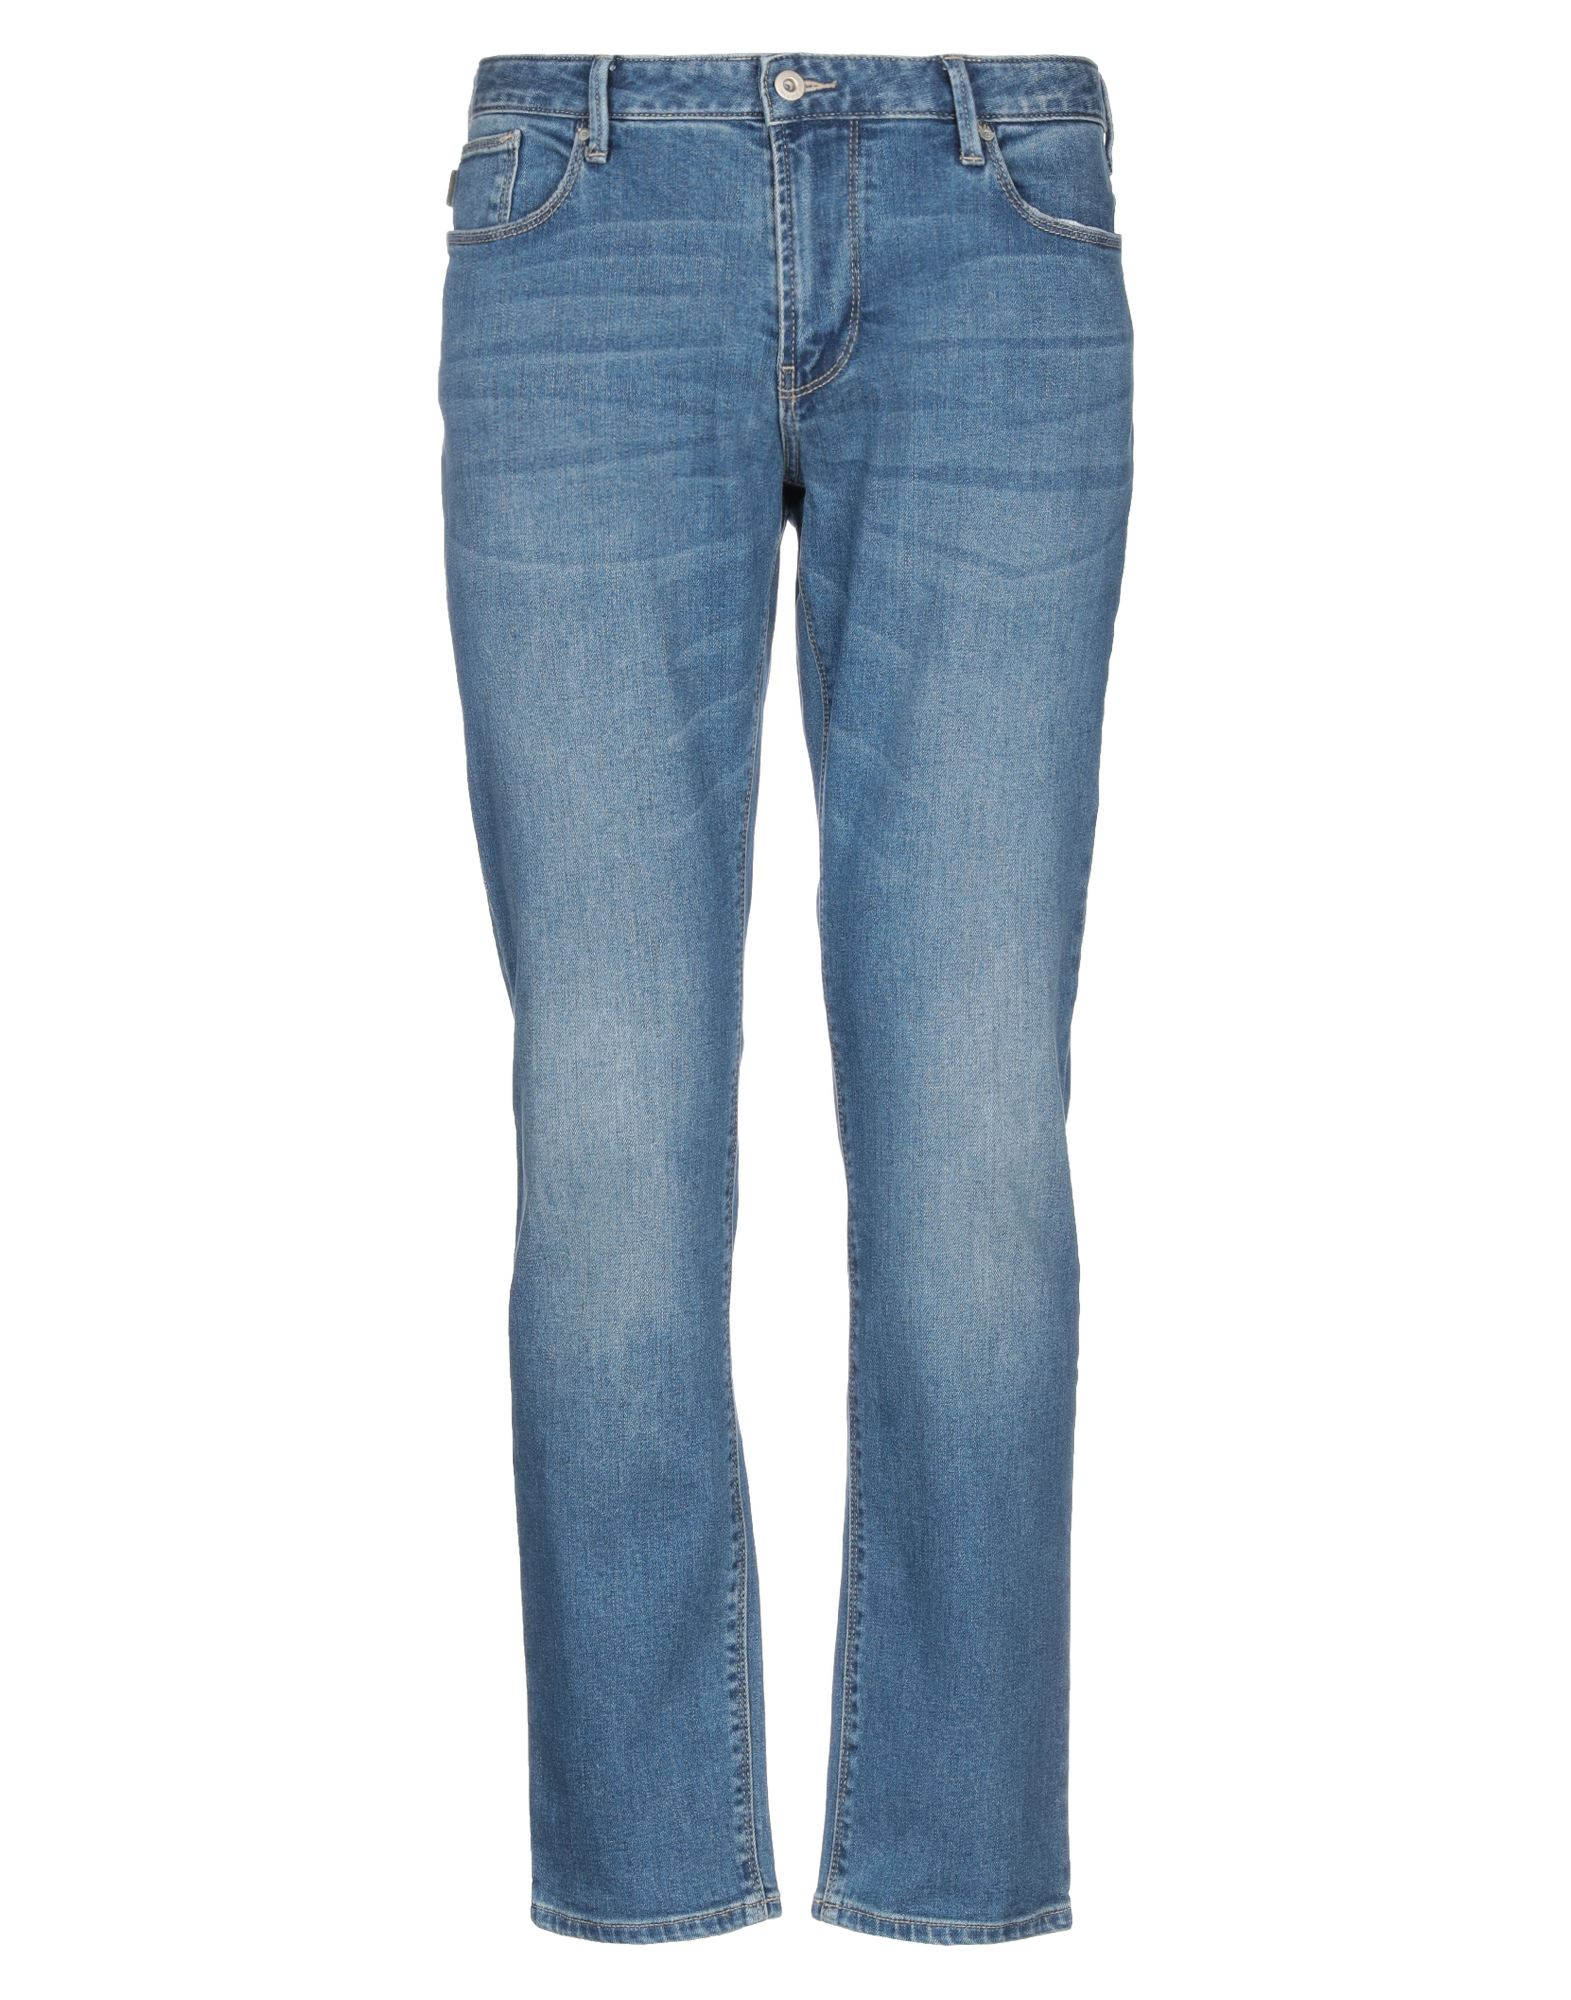 EMPORIO ARMANI Denim pants - Item 42824378